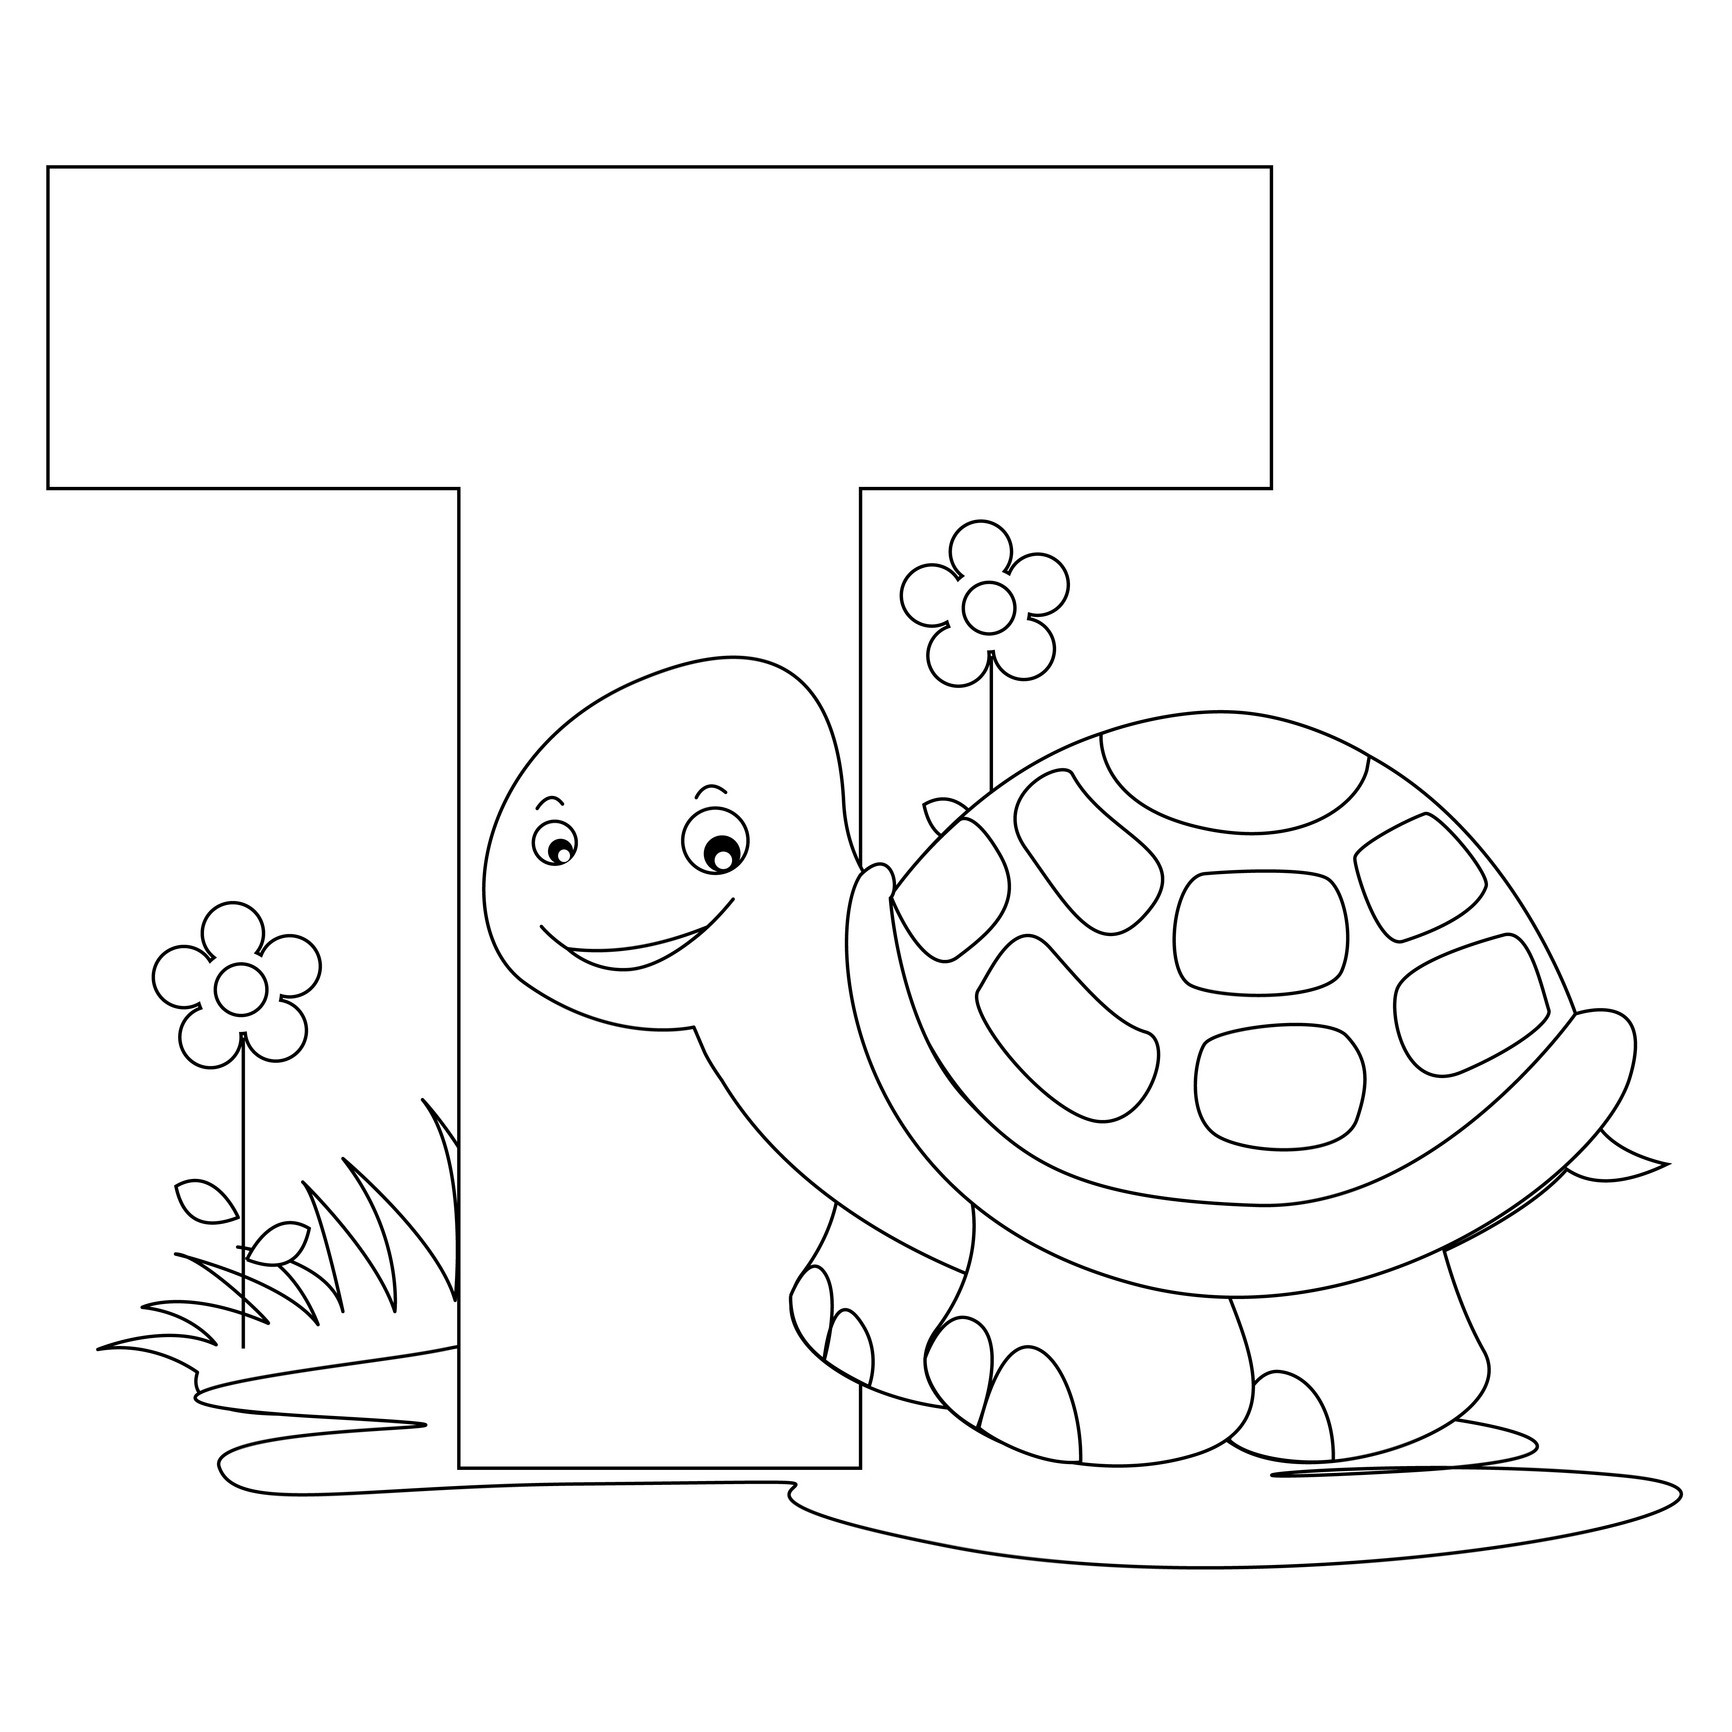 Free Printable Alphabet Coloring Pages For Kids Best Free Printable Coloring Pages For